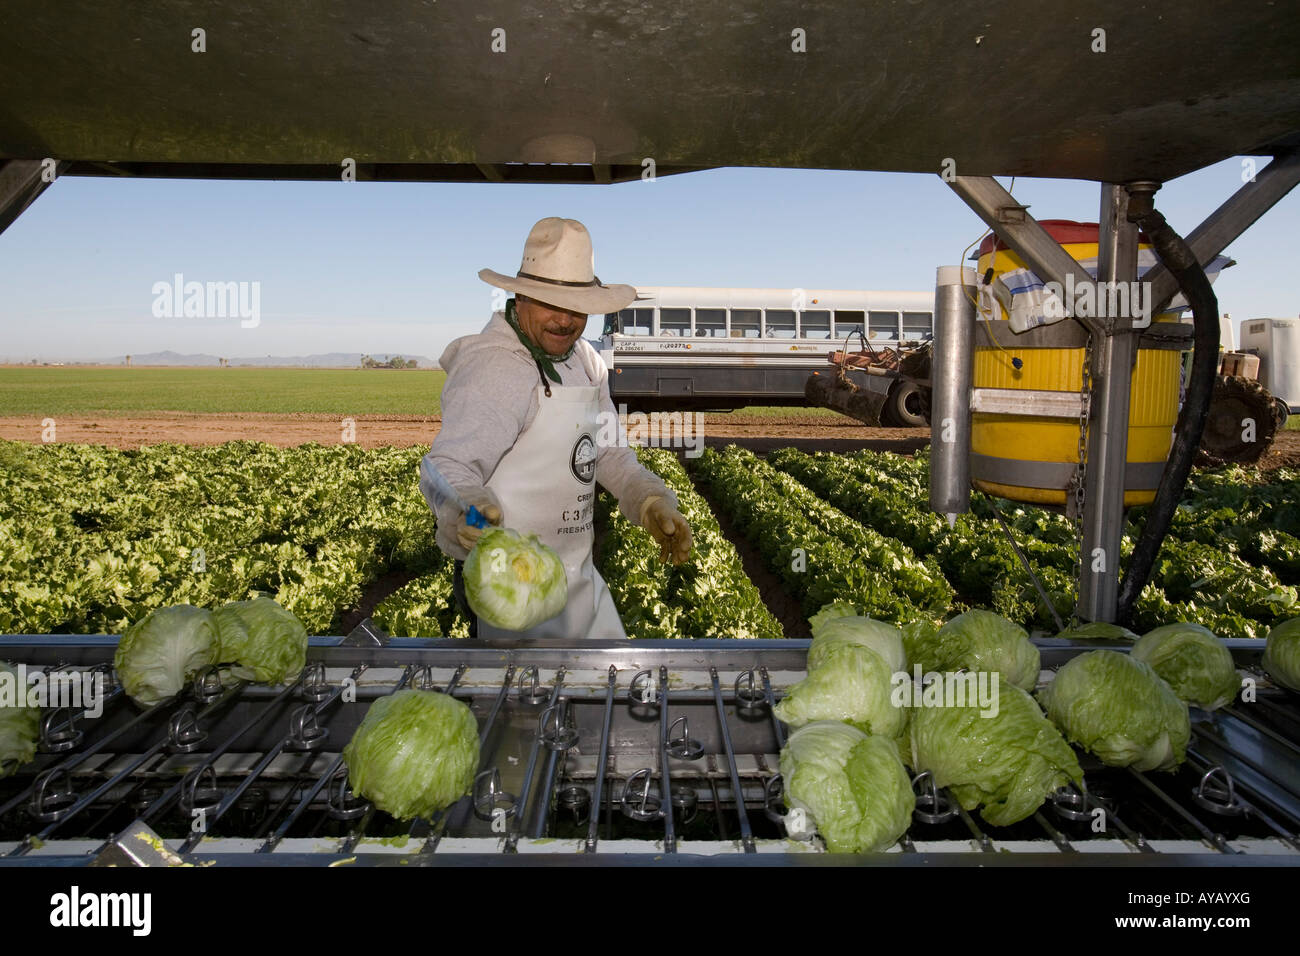 Mexican workers harvest lettuce on Arizona farm - Stock Image